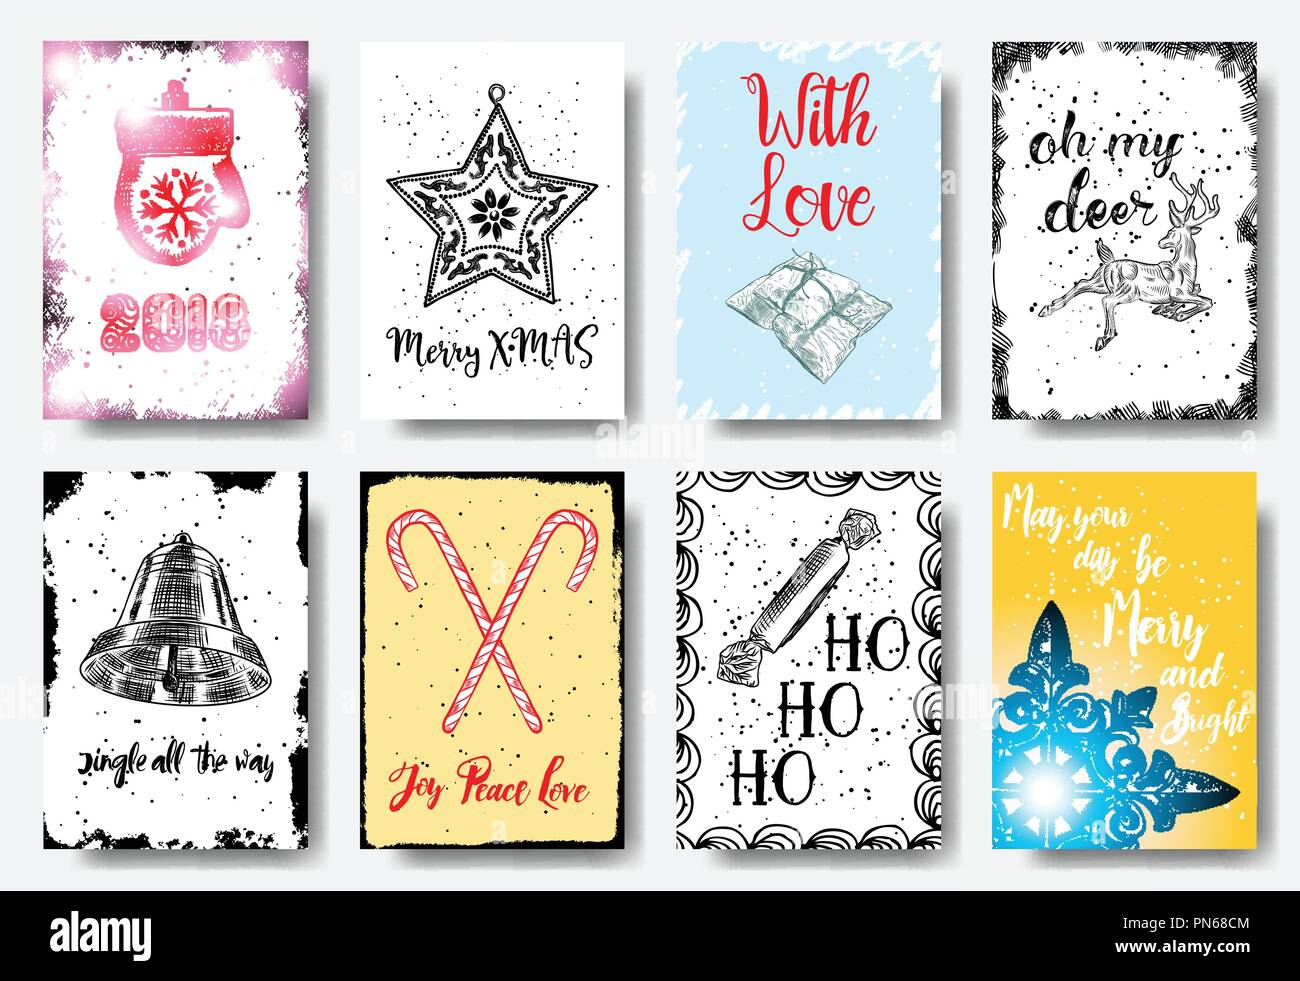 Christmas hand drawn cards with calligraphy 2018, Merry X MAS, with ...